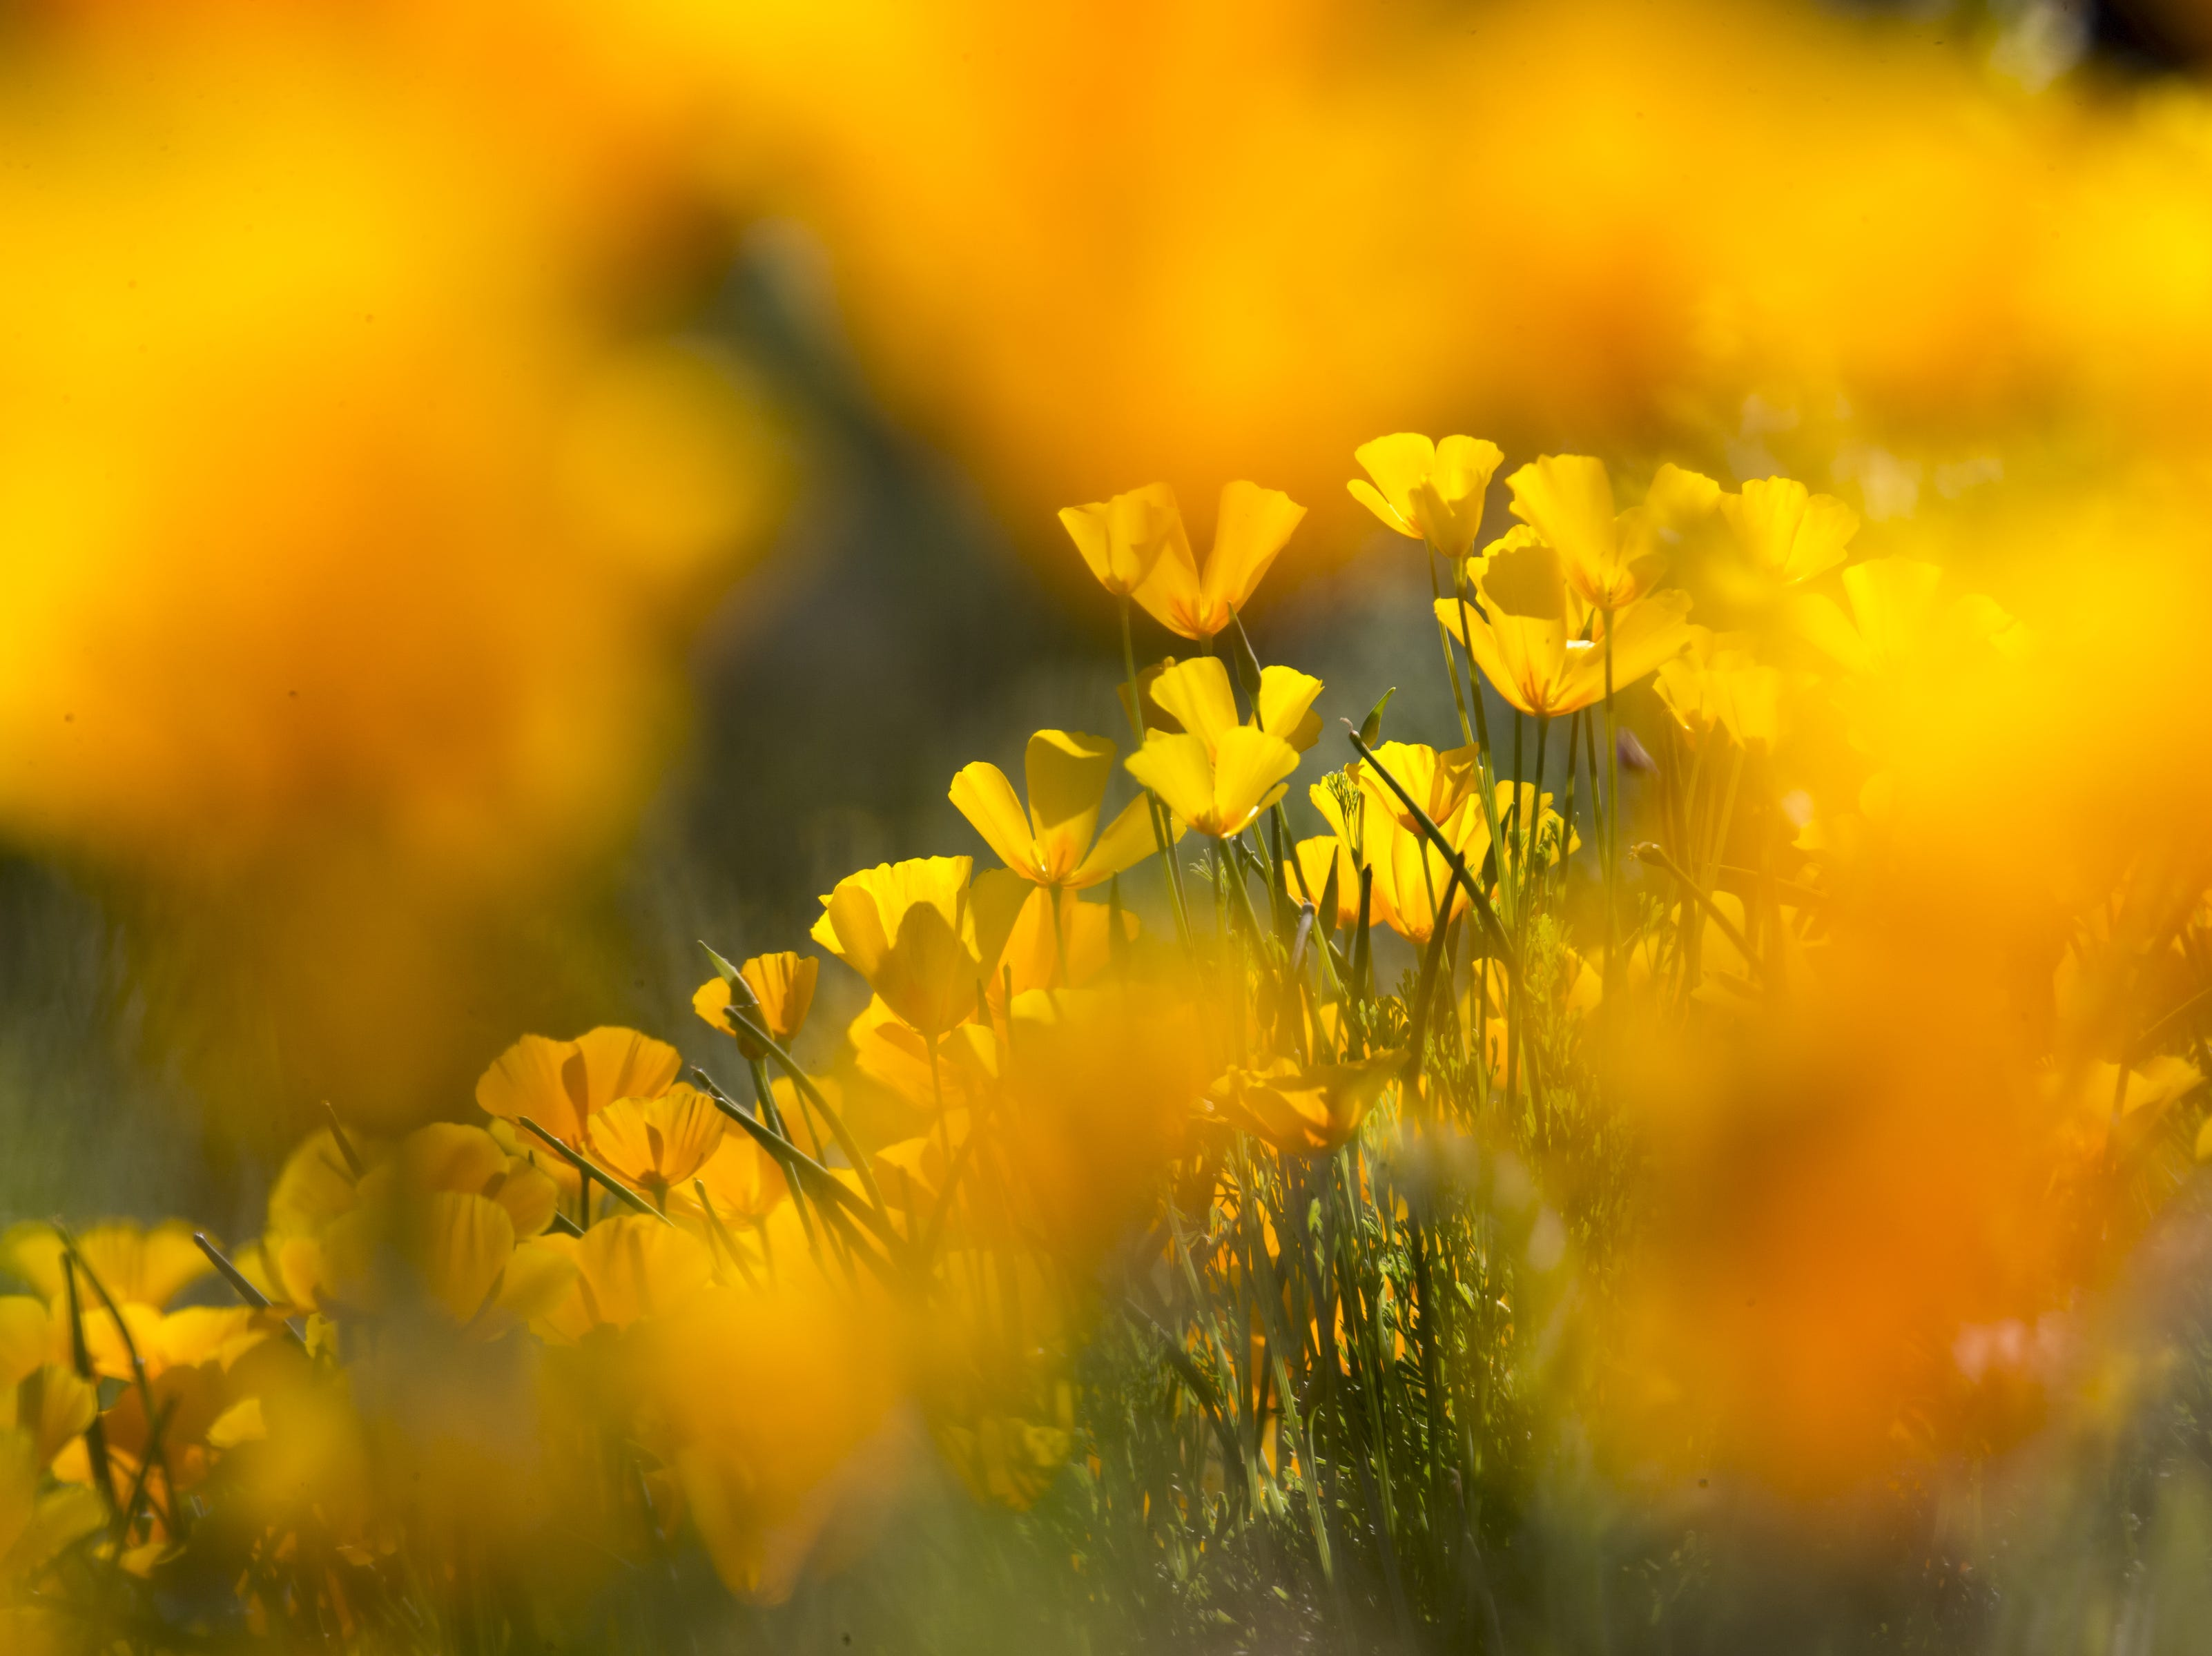 Poppies are in peak bloom, March 5, 2019, at Picacho Peak State Park, Arizona.